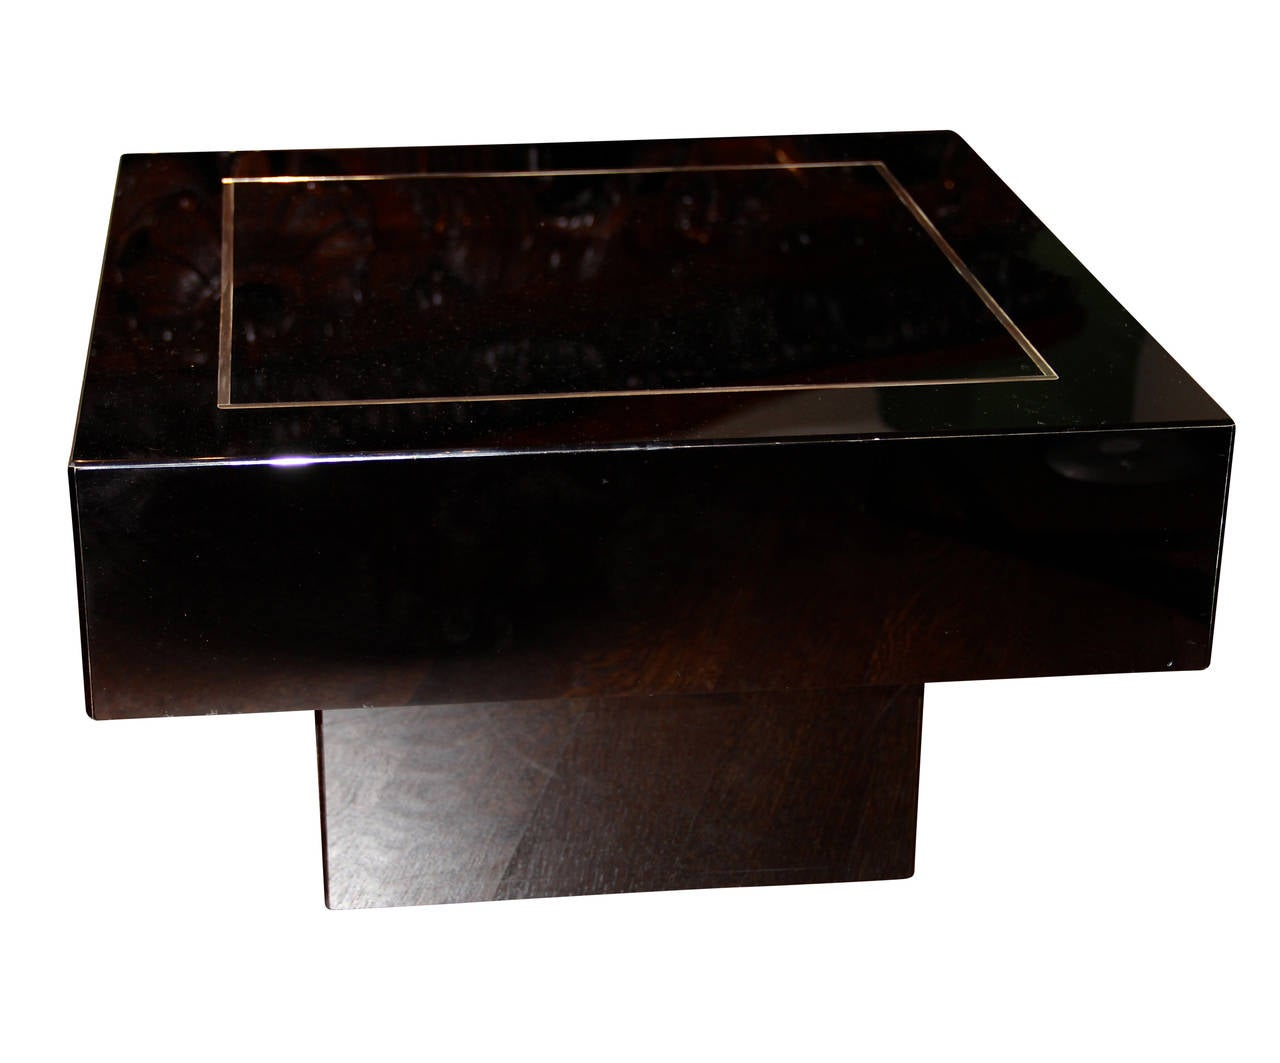 Black Acrylic Coffee Table Furniture Gt Living Room Furniture Gt Coffee Table Gt Black Acrylic